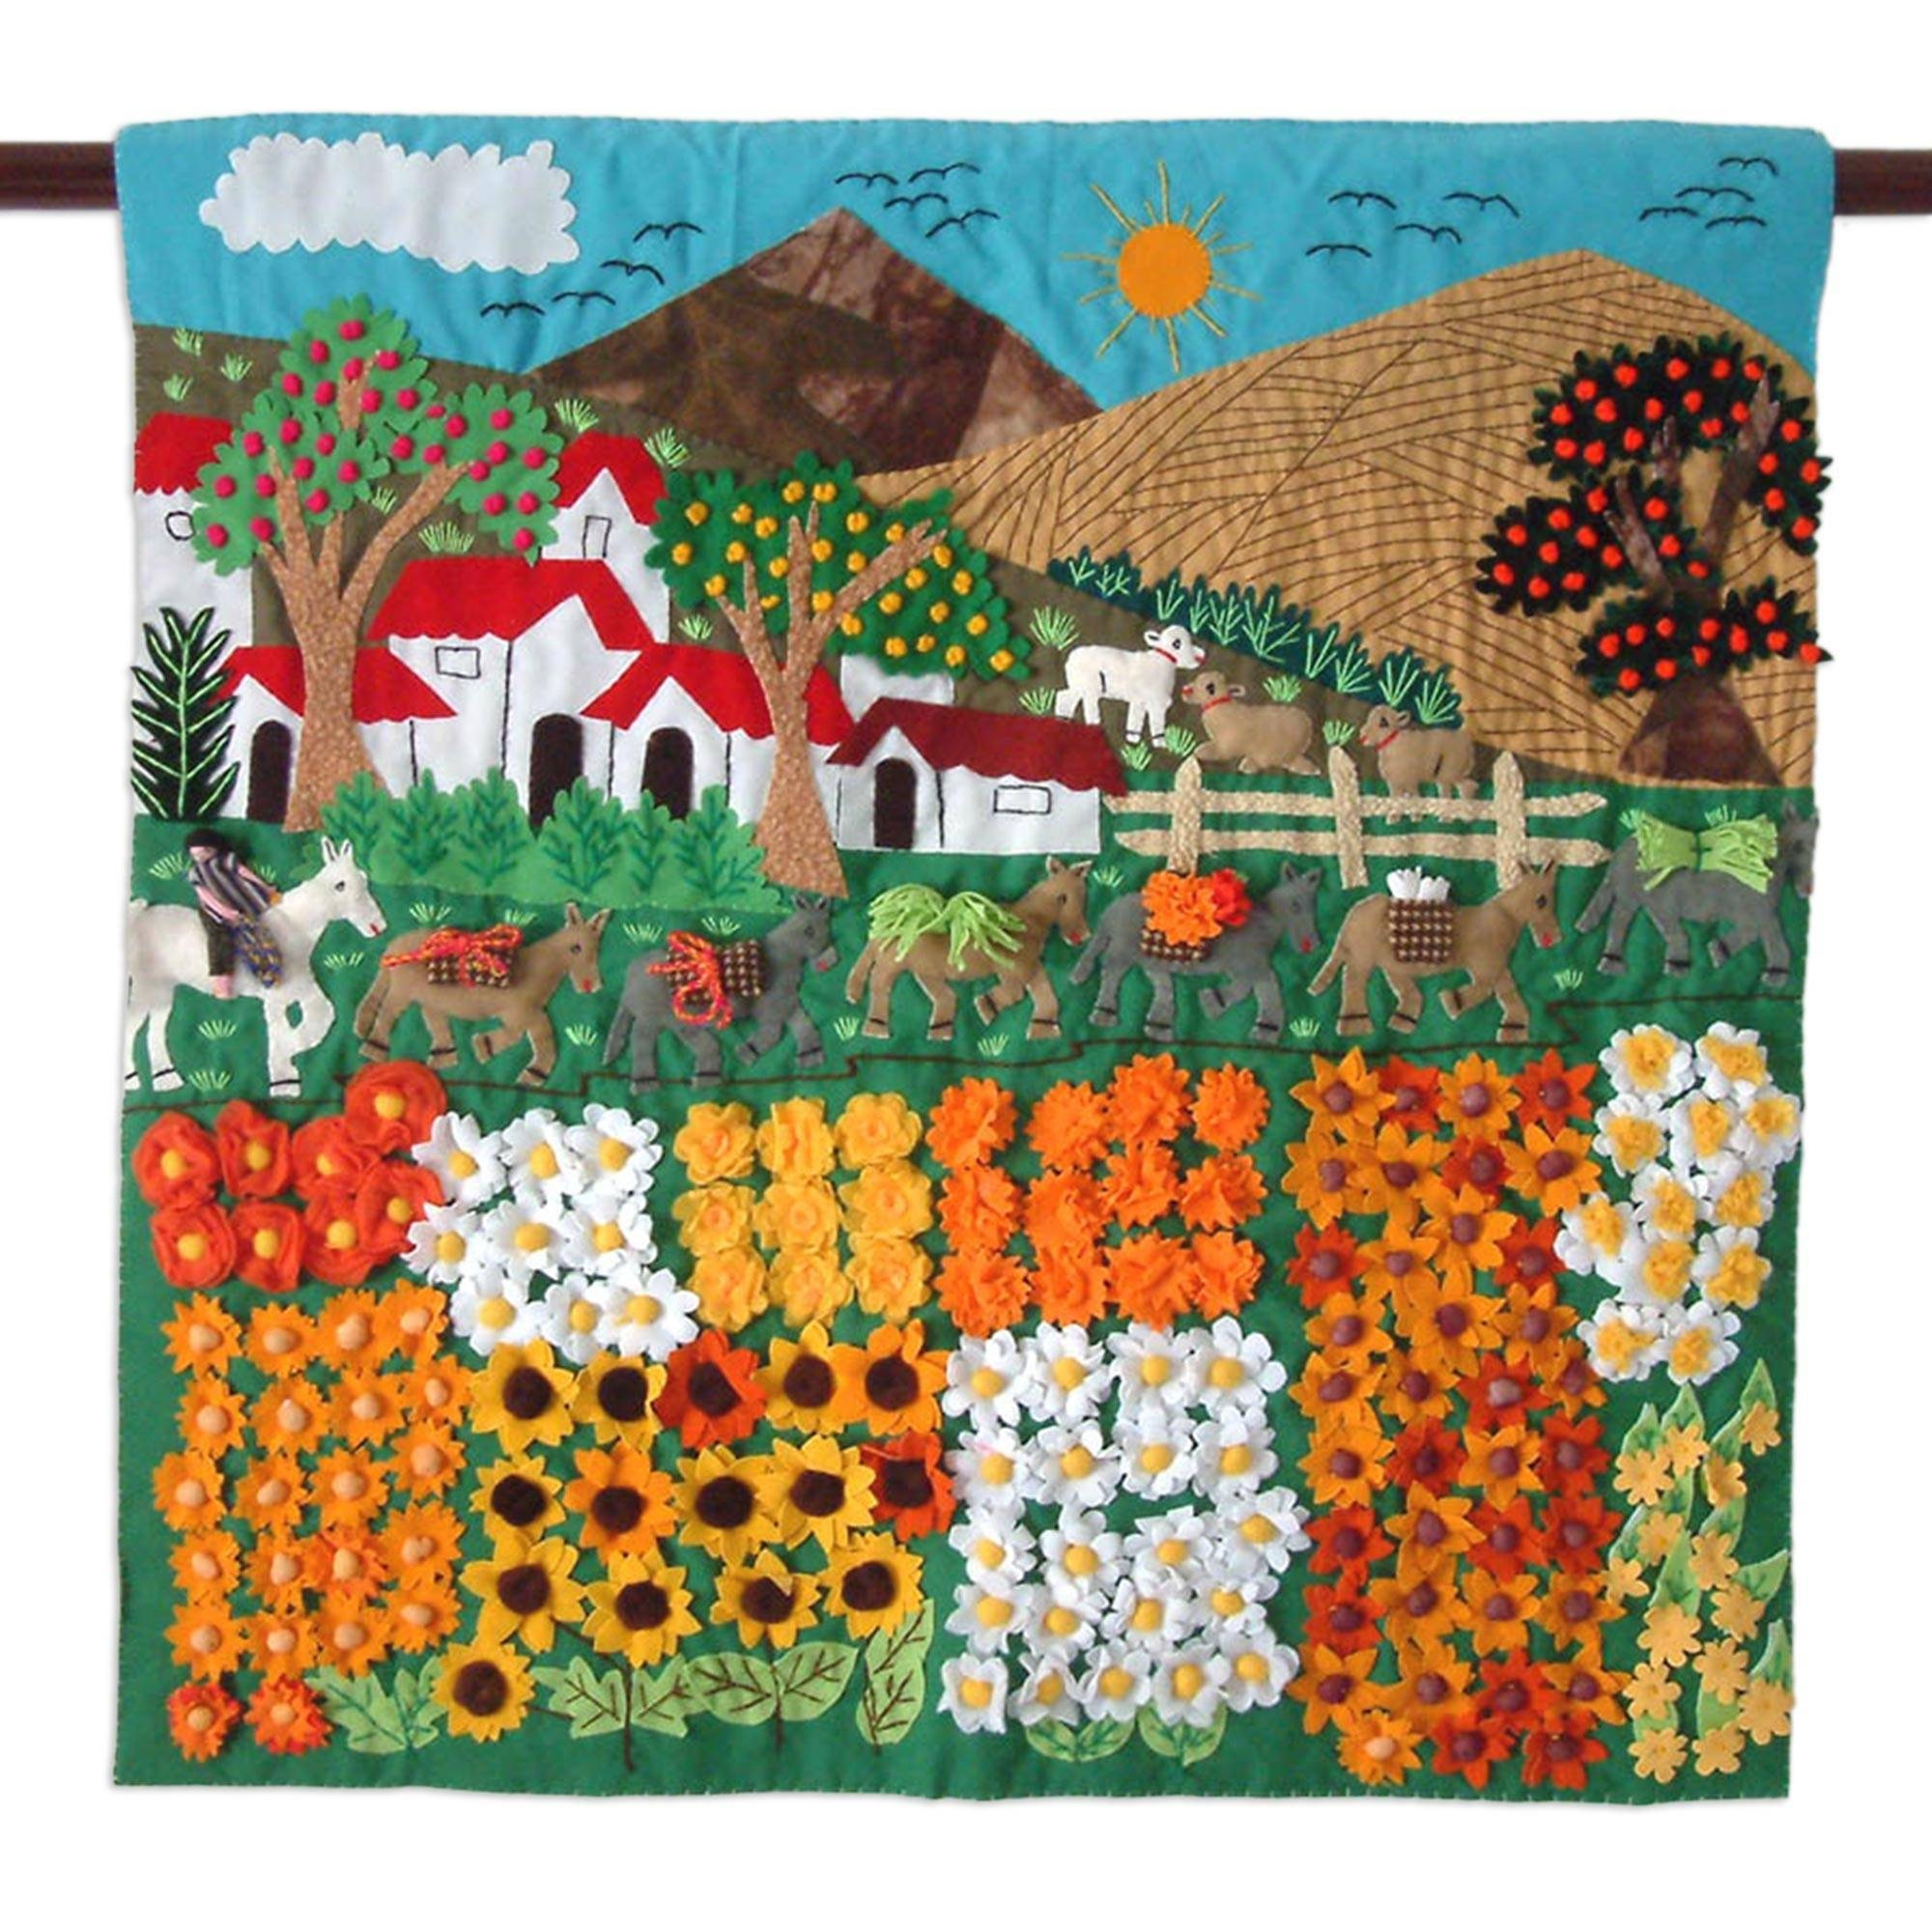 Hand Crafted Peruvian Folk Art Applique Wall Hanging – Sunflower For Best And Newest Peruvian Wall Art (View 2 of 30)